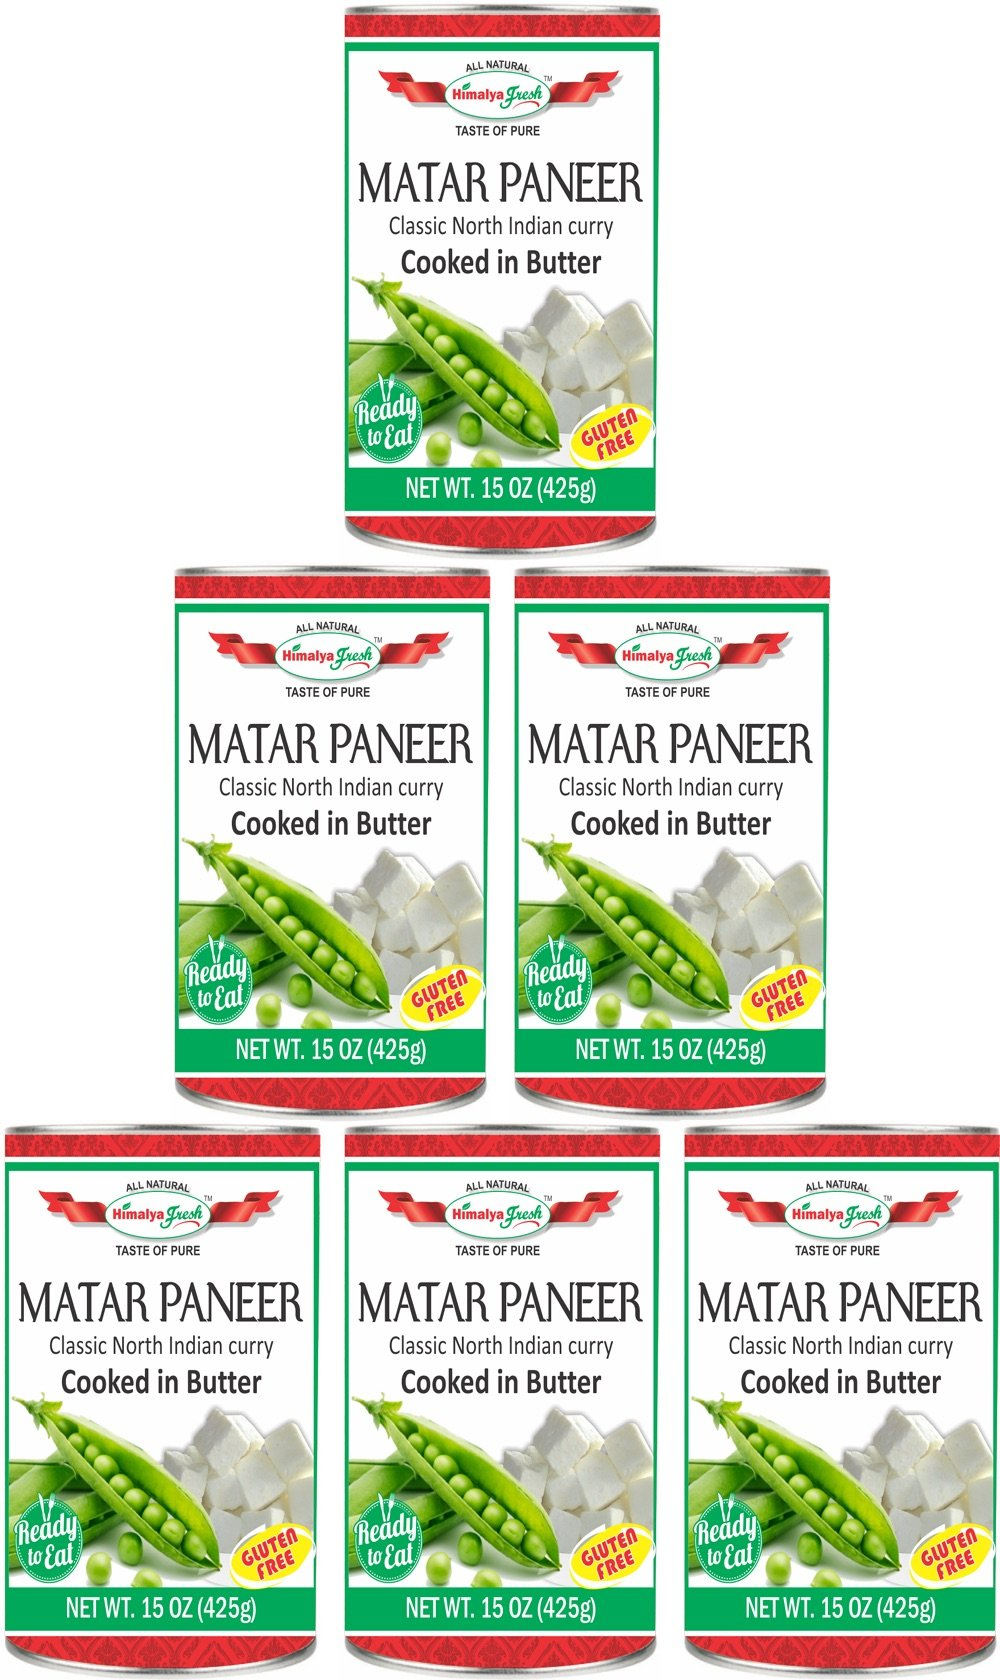 HIMALYA FRESH Authentic Indian Food Ready To Eat Canned Matar Paneer, All Natural 6 Cans/15 Oz Ea. - Gluten Free Curry Cooked In Butter - Vegetarian, No Fillers Or Preservatives